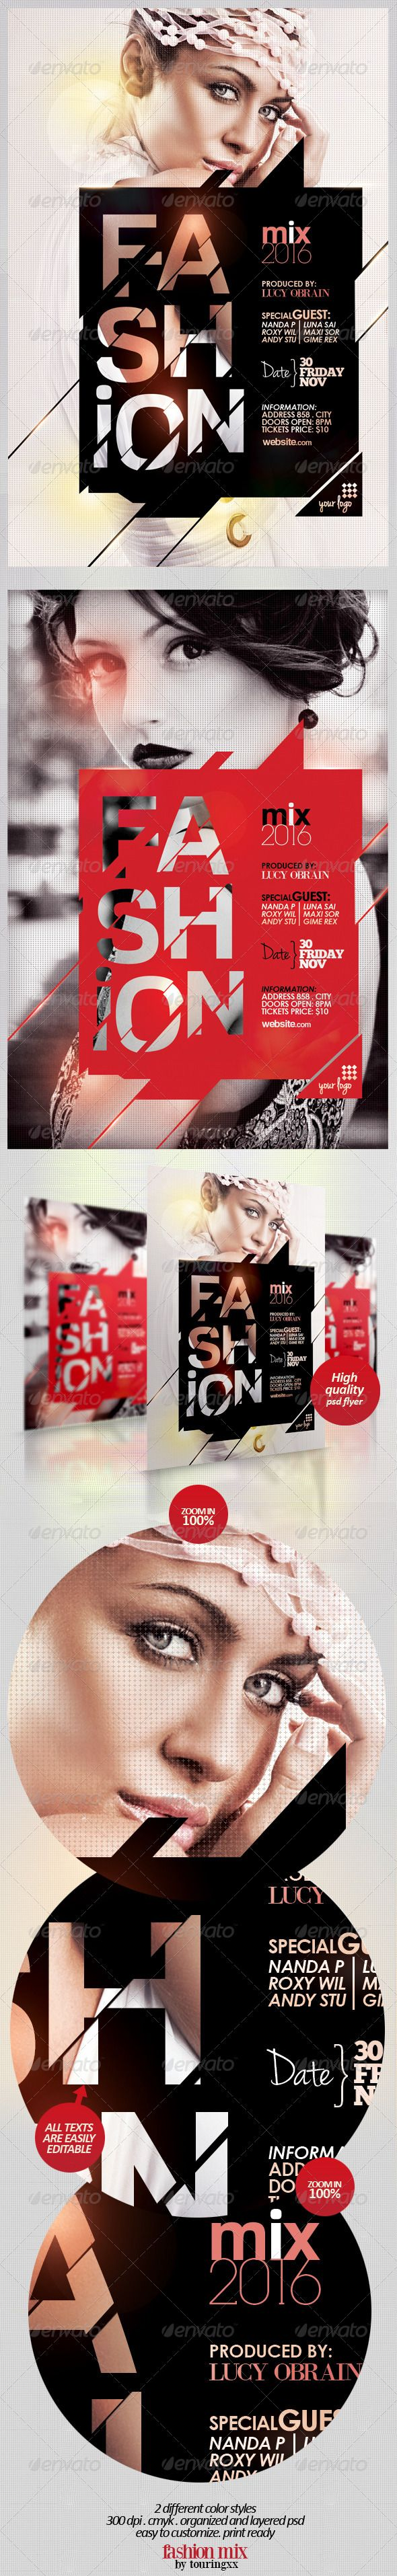 Fashion Mix Flyer Template / $6. *** This flyer is perfect for the promotion of Events, Club Parties, Musicals, Festivals, Shops/Boutiques, New Collections, Concerts, Promotions or Whatever You Want!*** P.s. simple quest for everyone) Why did Bill die?